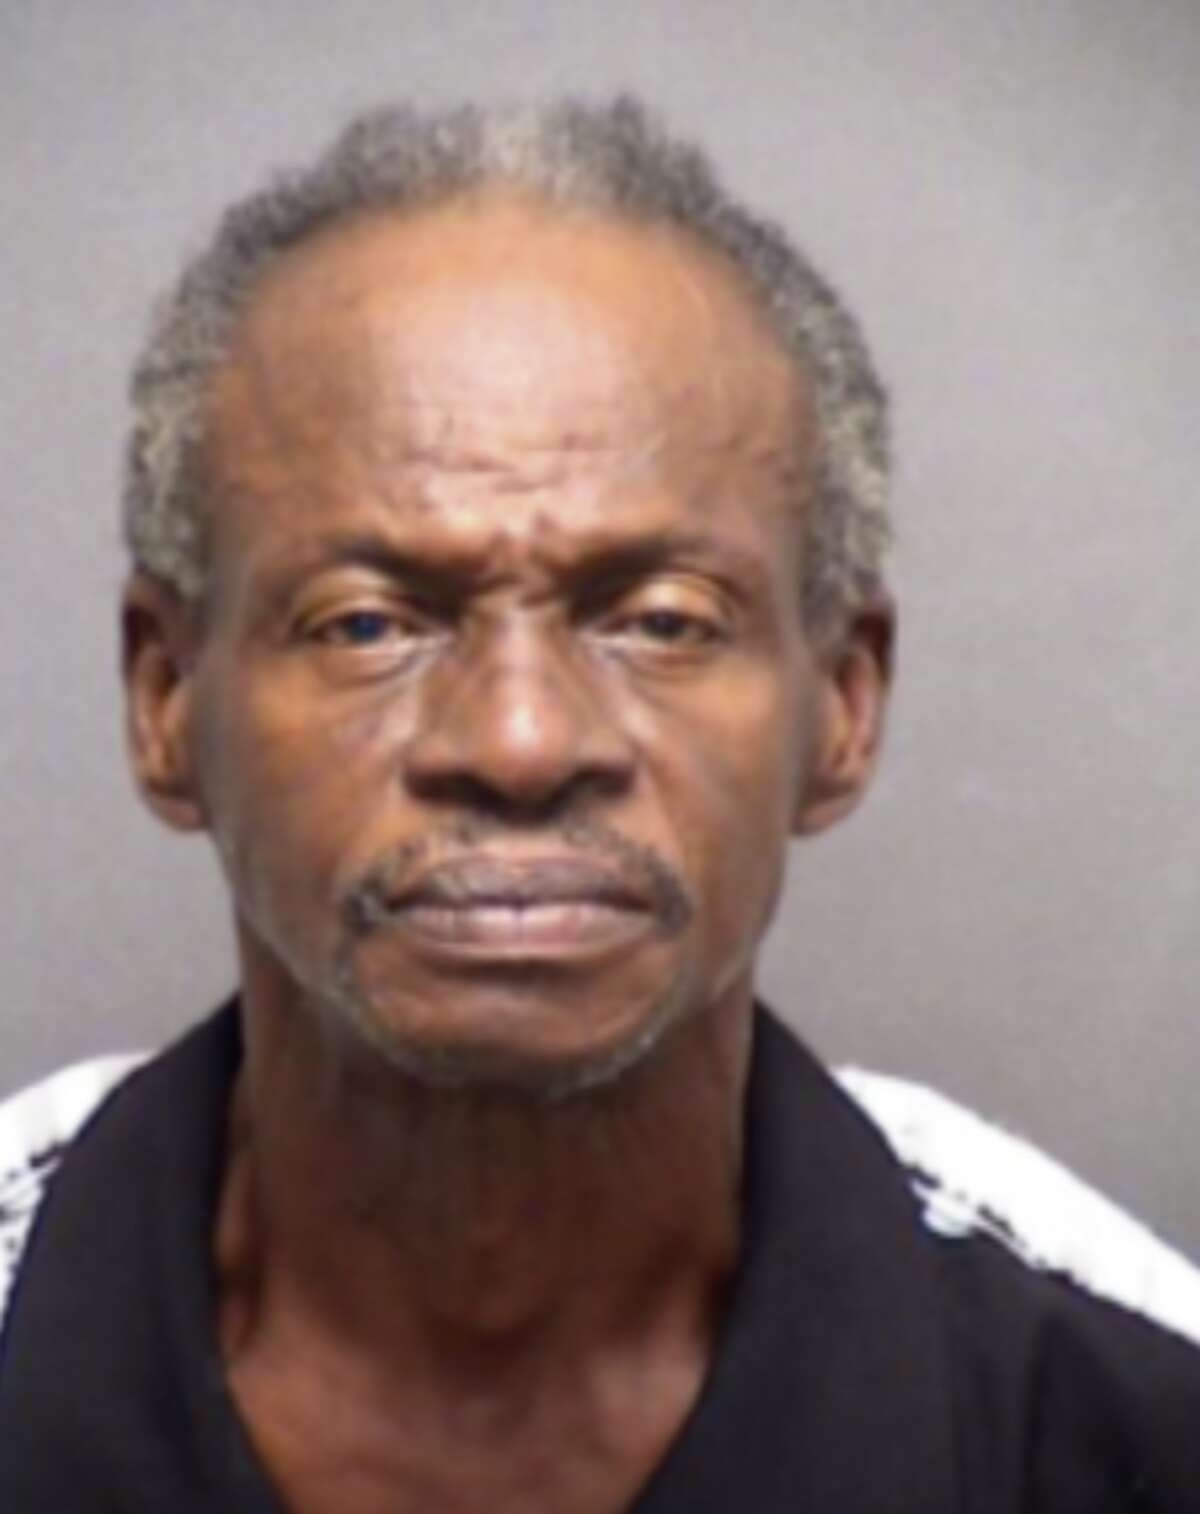 Carlos Robinson, 69, fled the 600 block of Ferris Ave. after critically injuring the victims at approximately 9:26 a.m. Tuesday, police said.